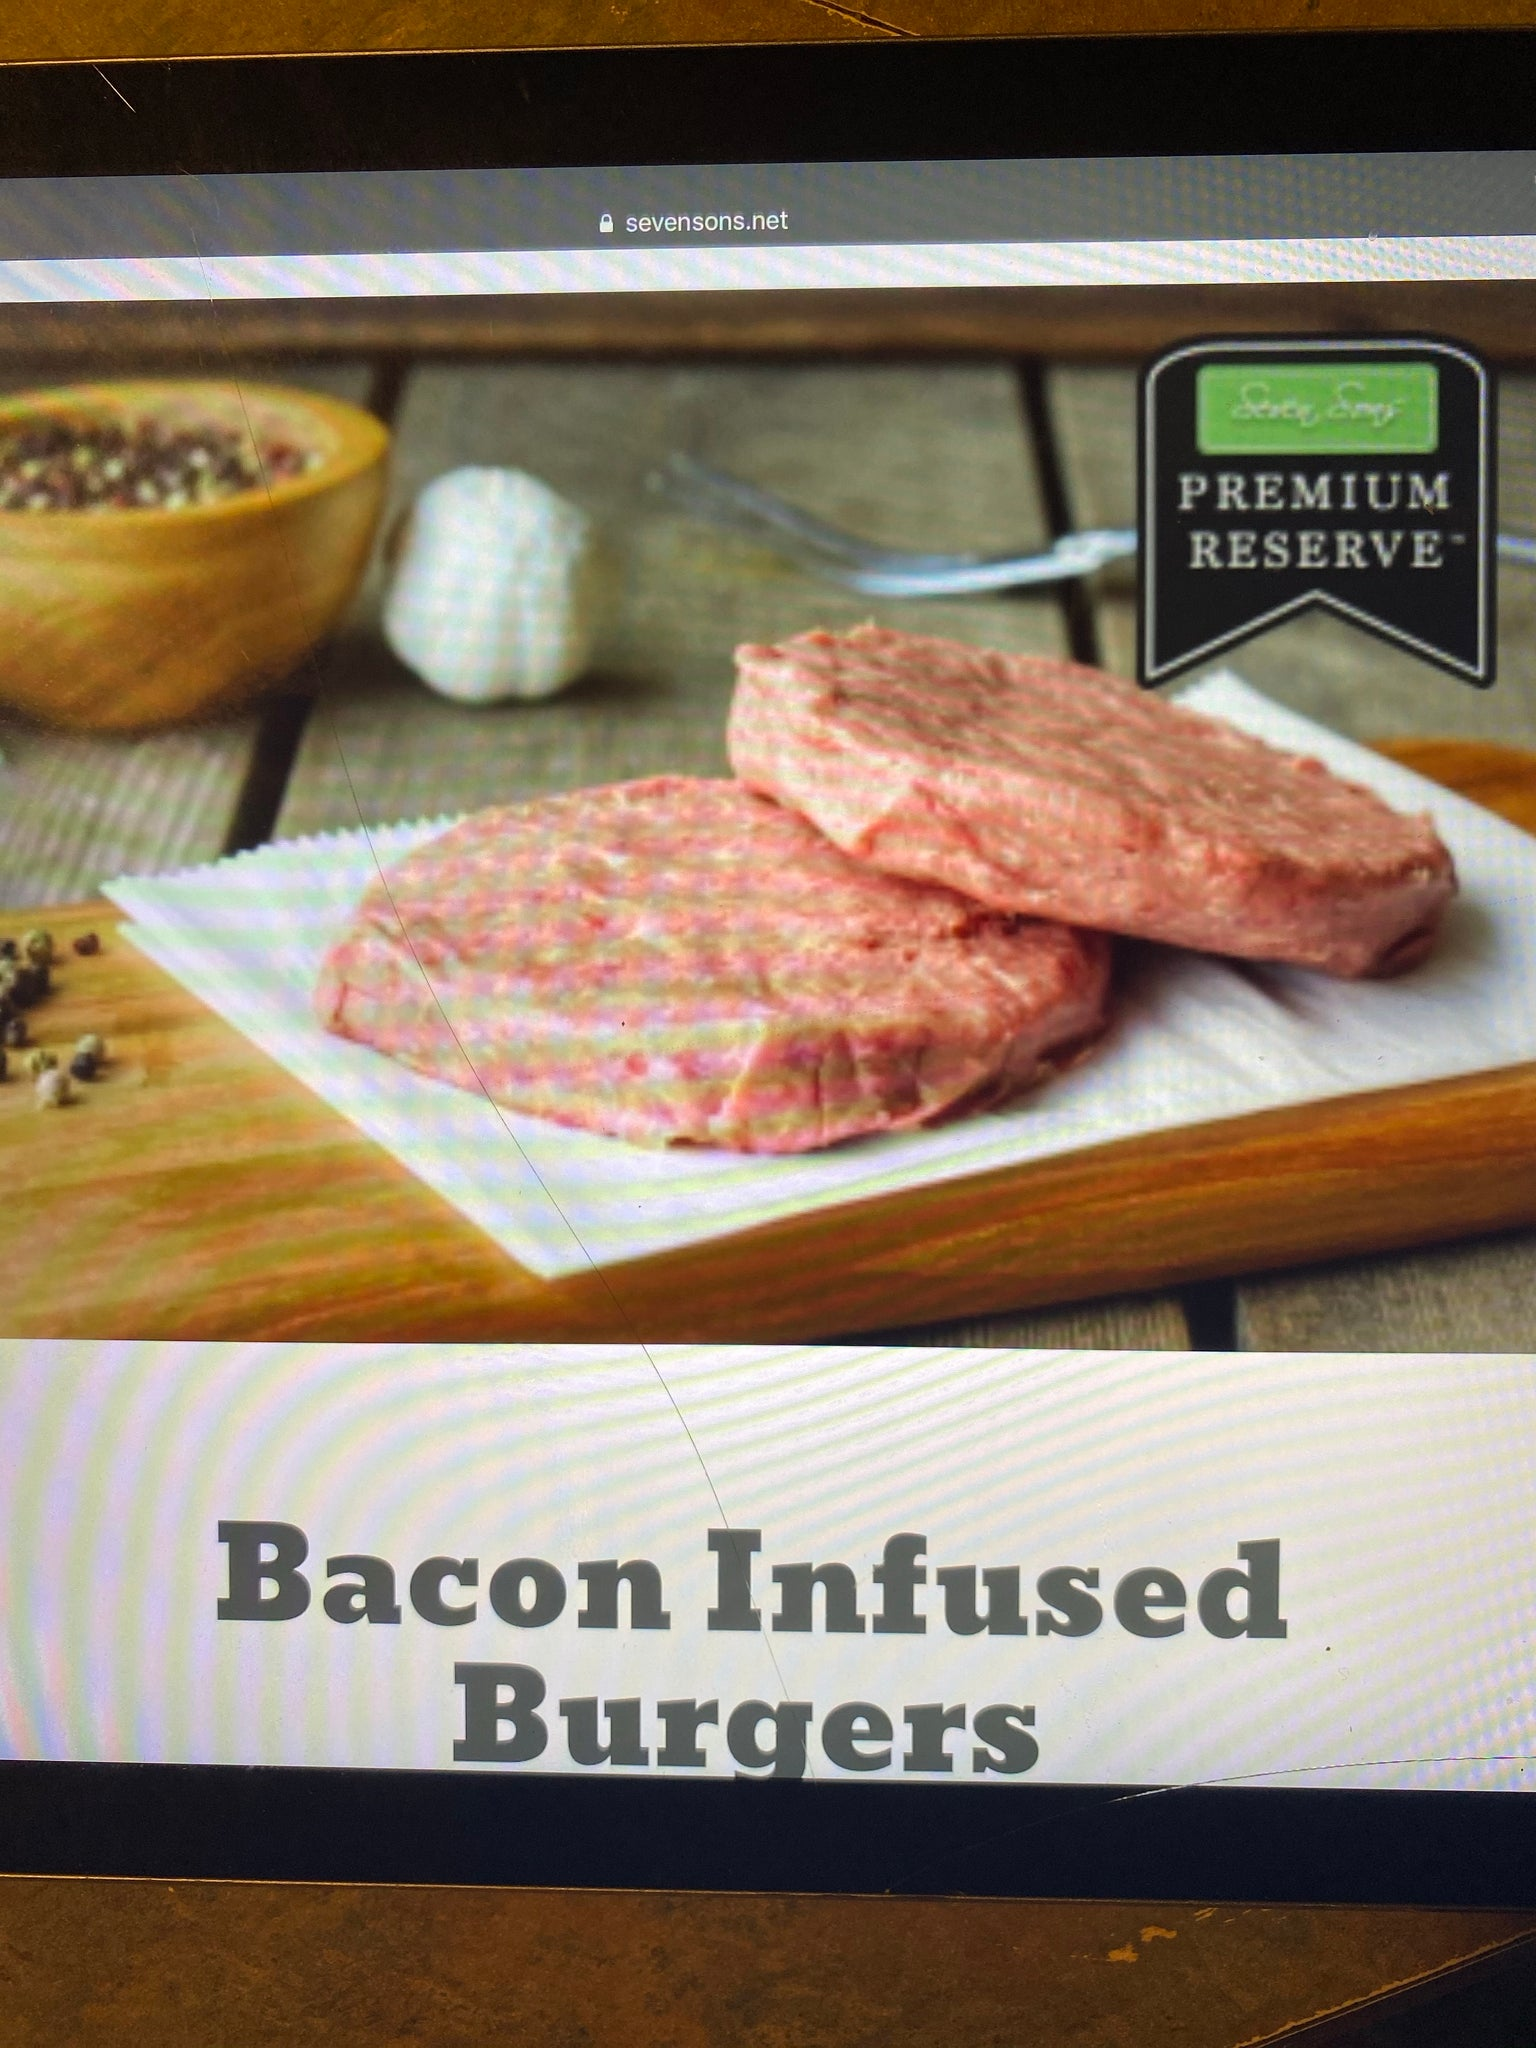 Bacon Infused Burgers